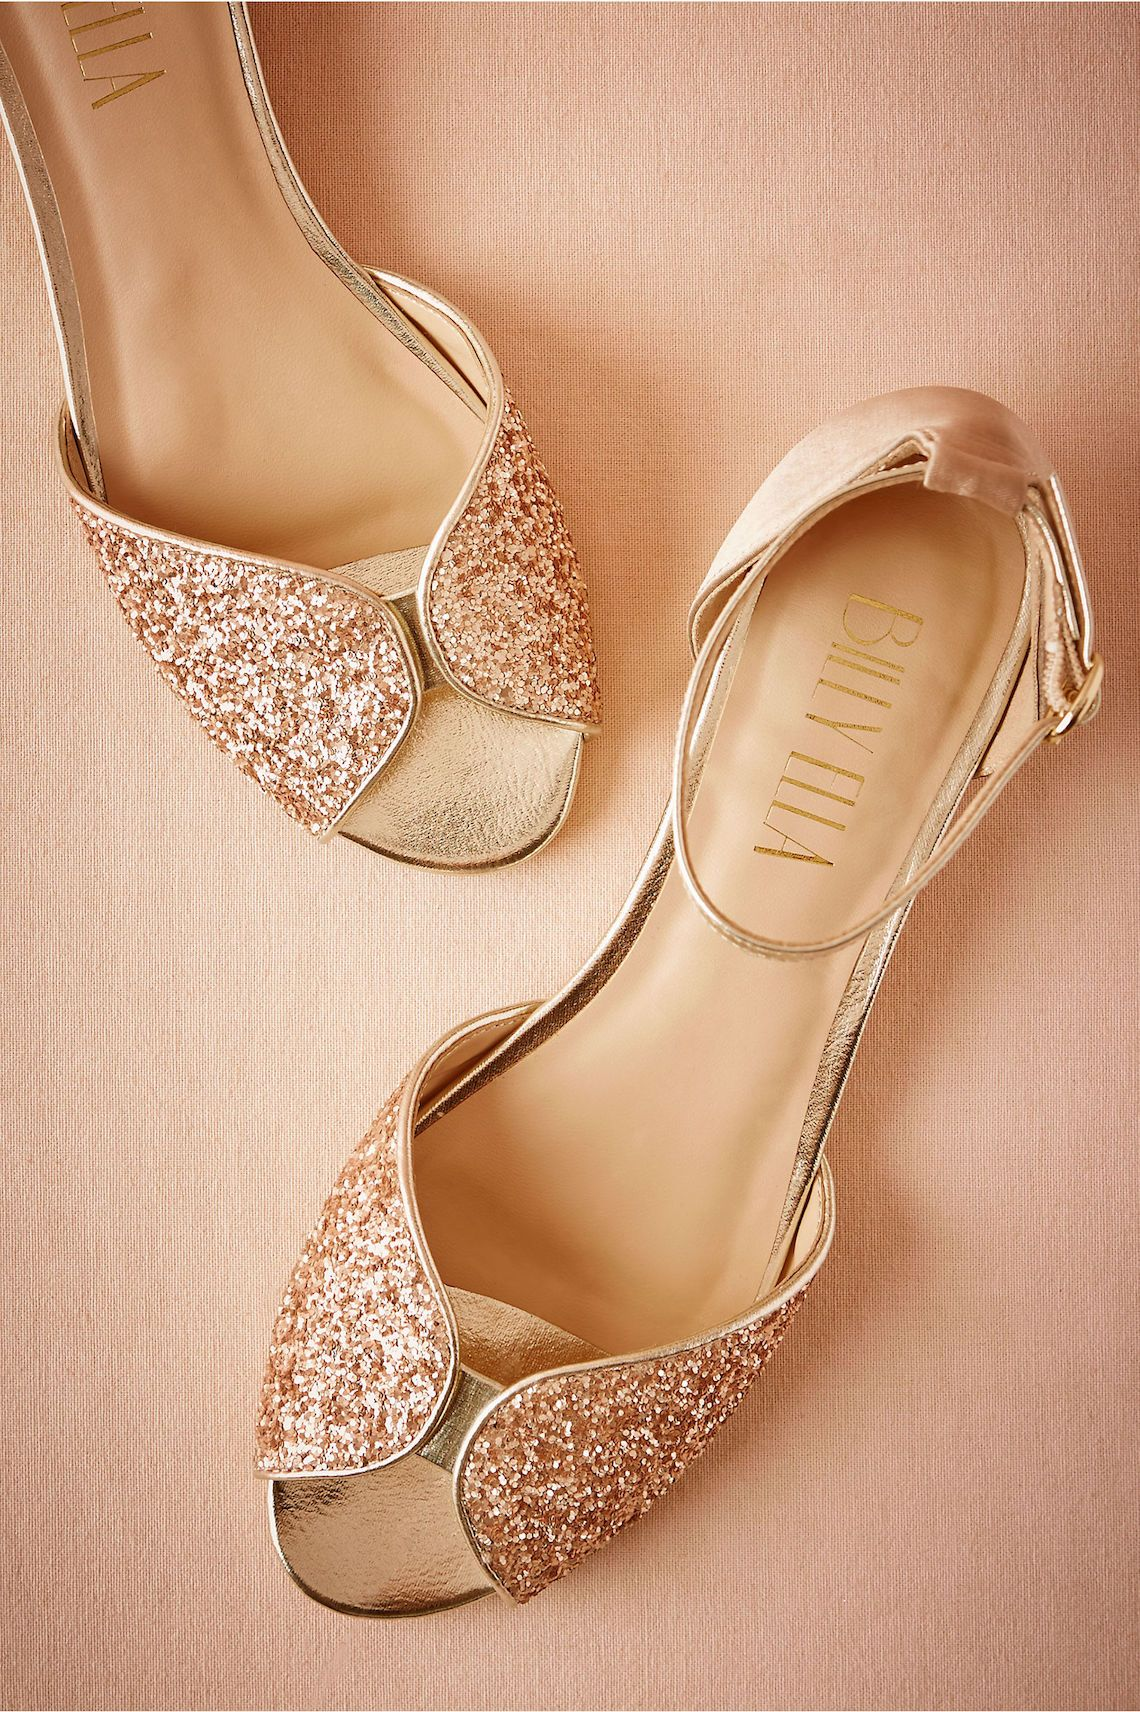 4ed72ca7d352 10 Flat Wedding Shoes (That Are Just As Chic As Heels)